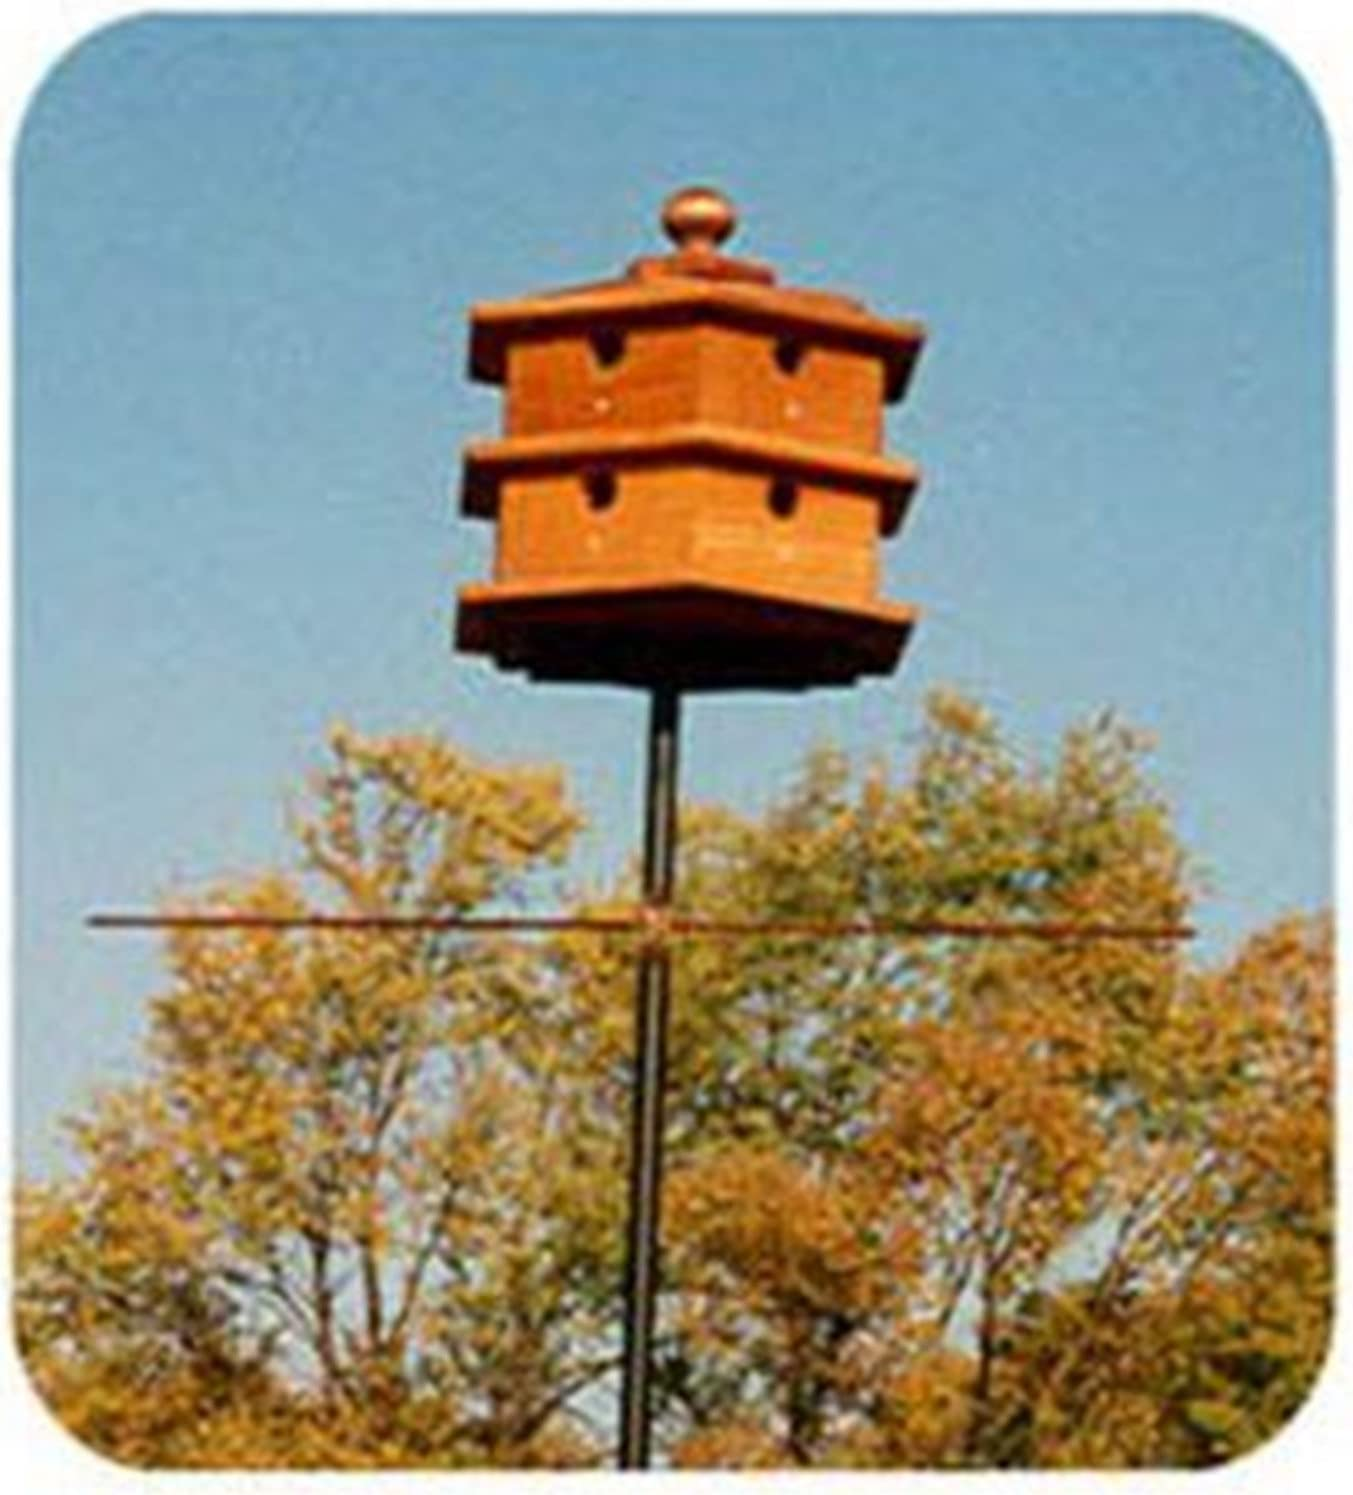 Woodworking Project Paper Plan To Build Hexagon Purple Martin House Bird Feeder And Bird House Woodworking Project Plans Amazon Com